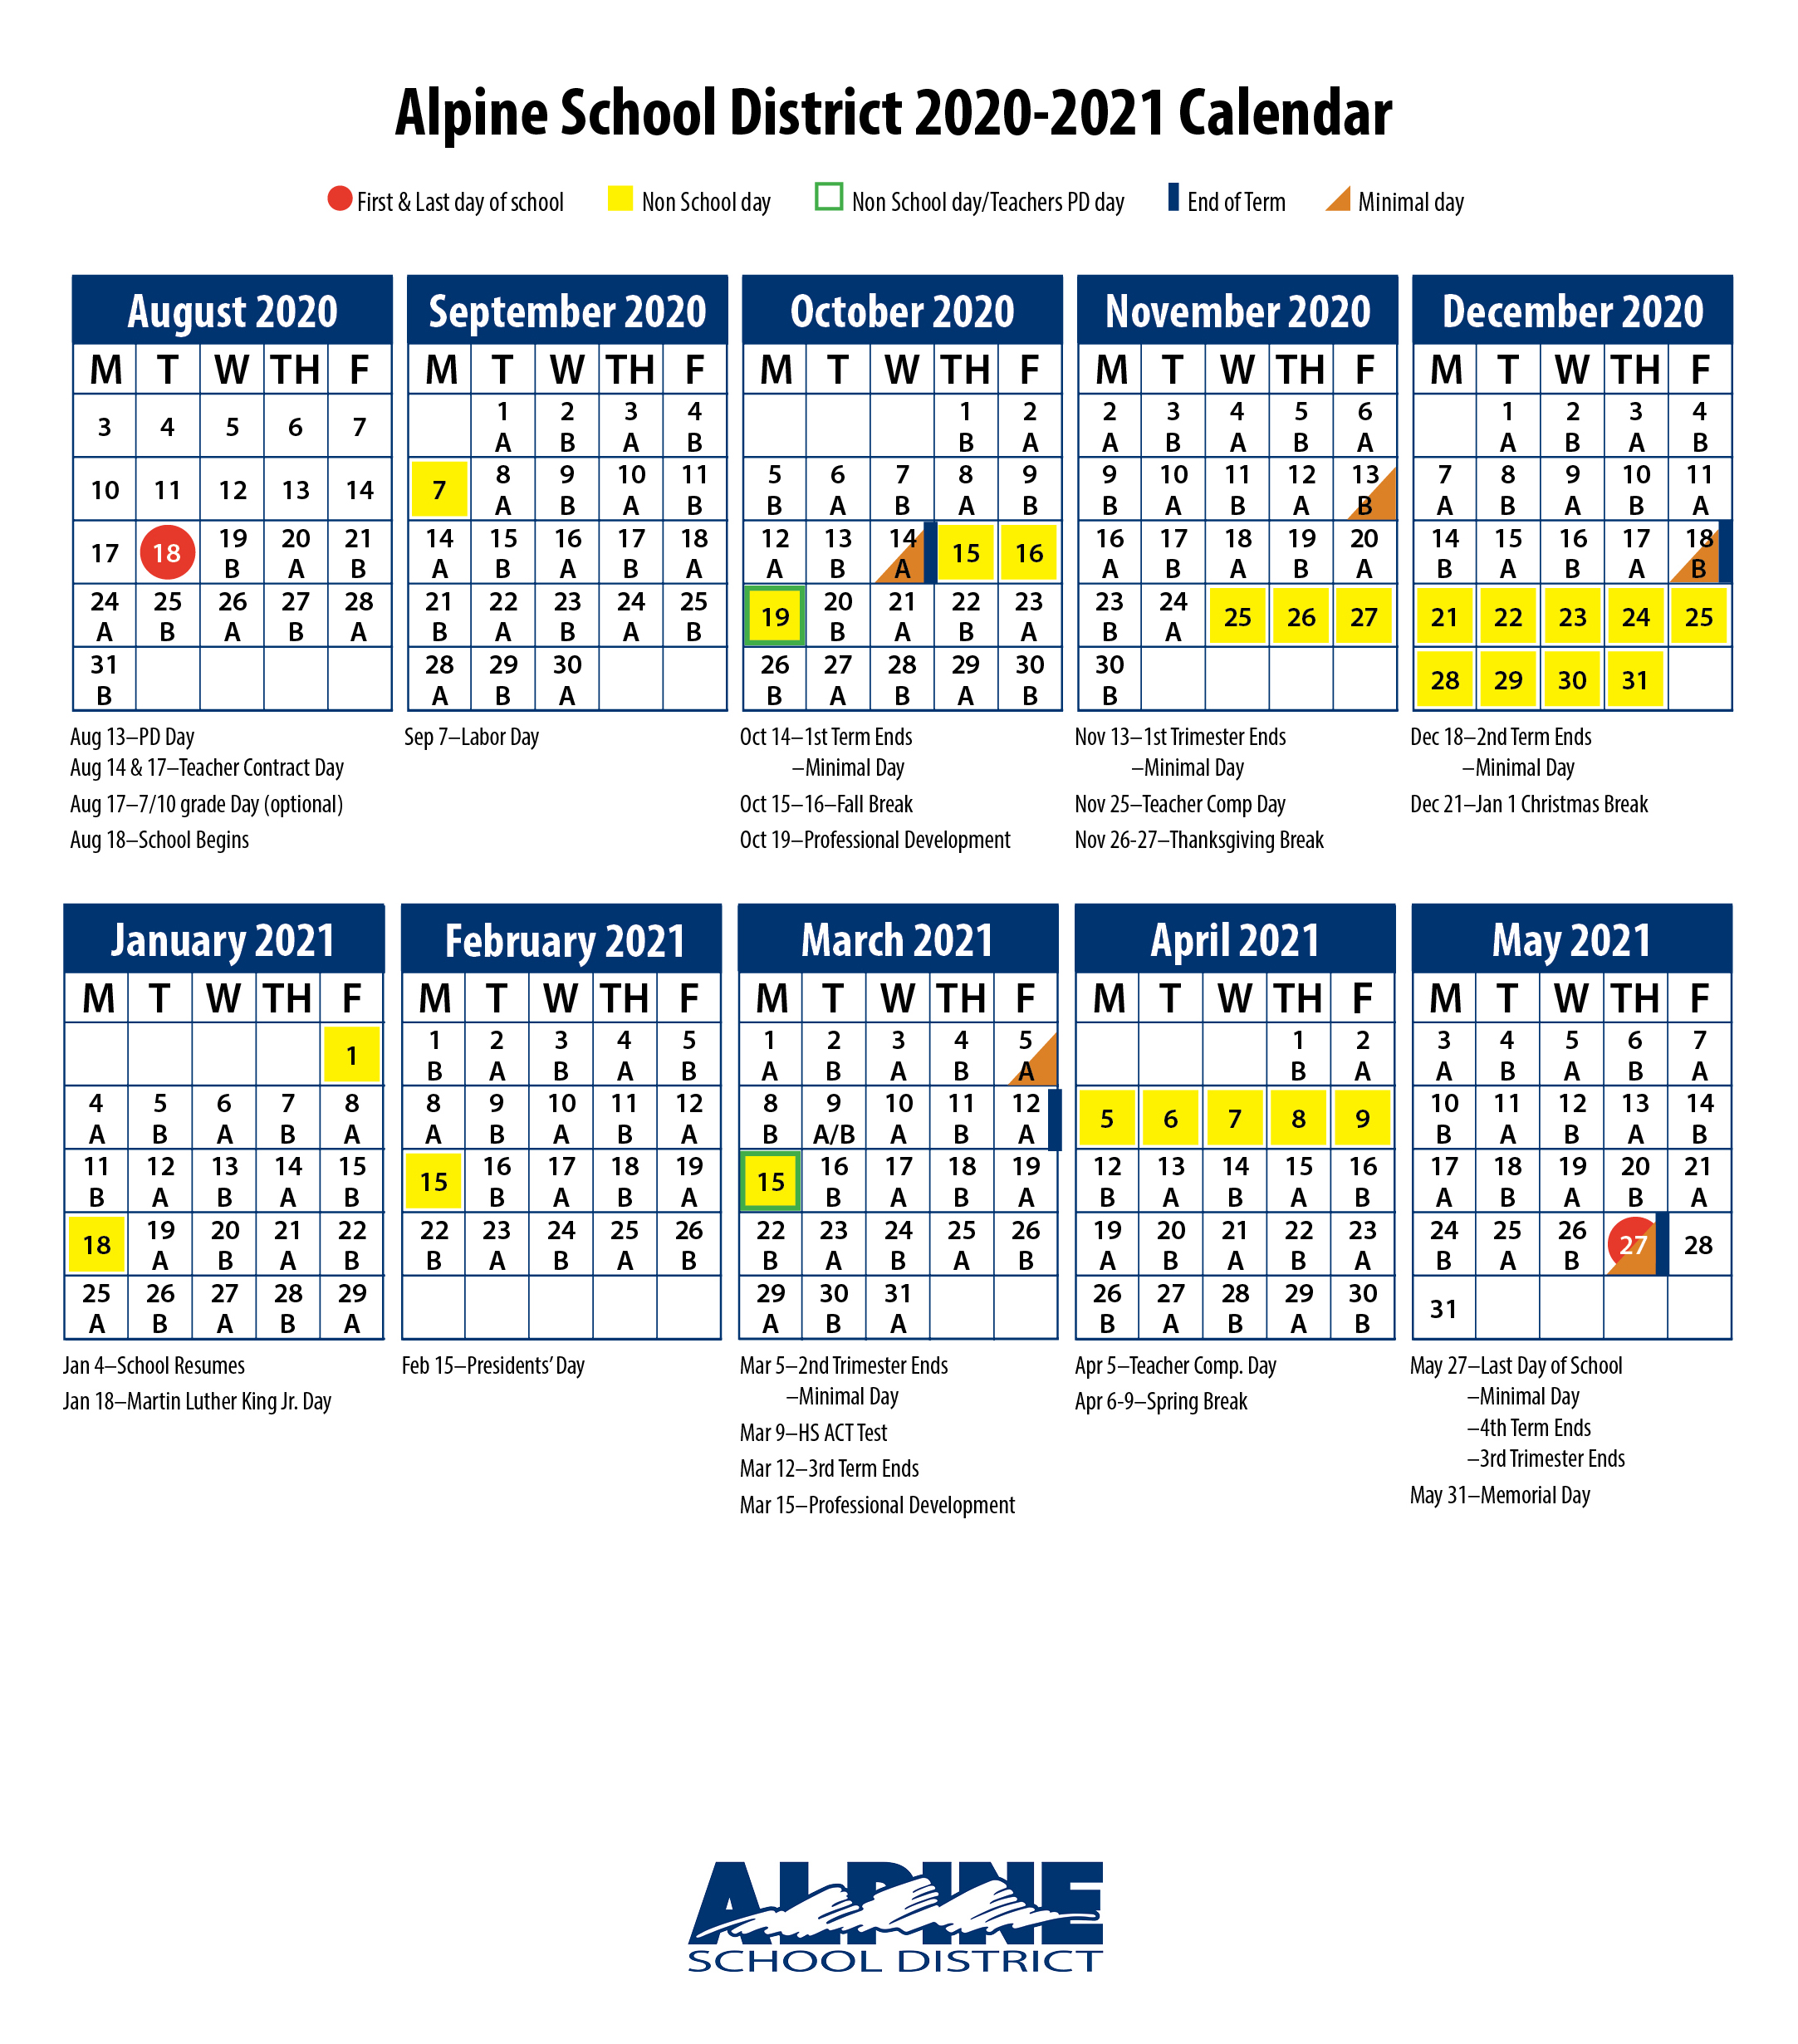 Alpine School District 2021 Calendar Oak Canyon Junior High – Home of the Eagles